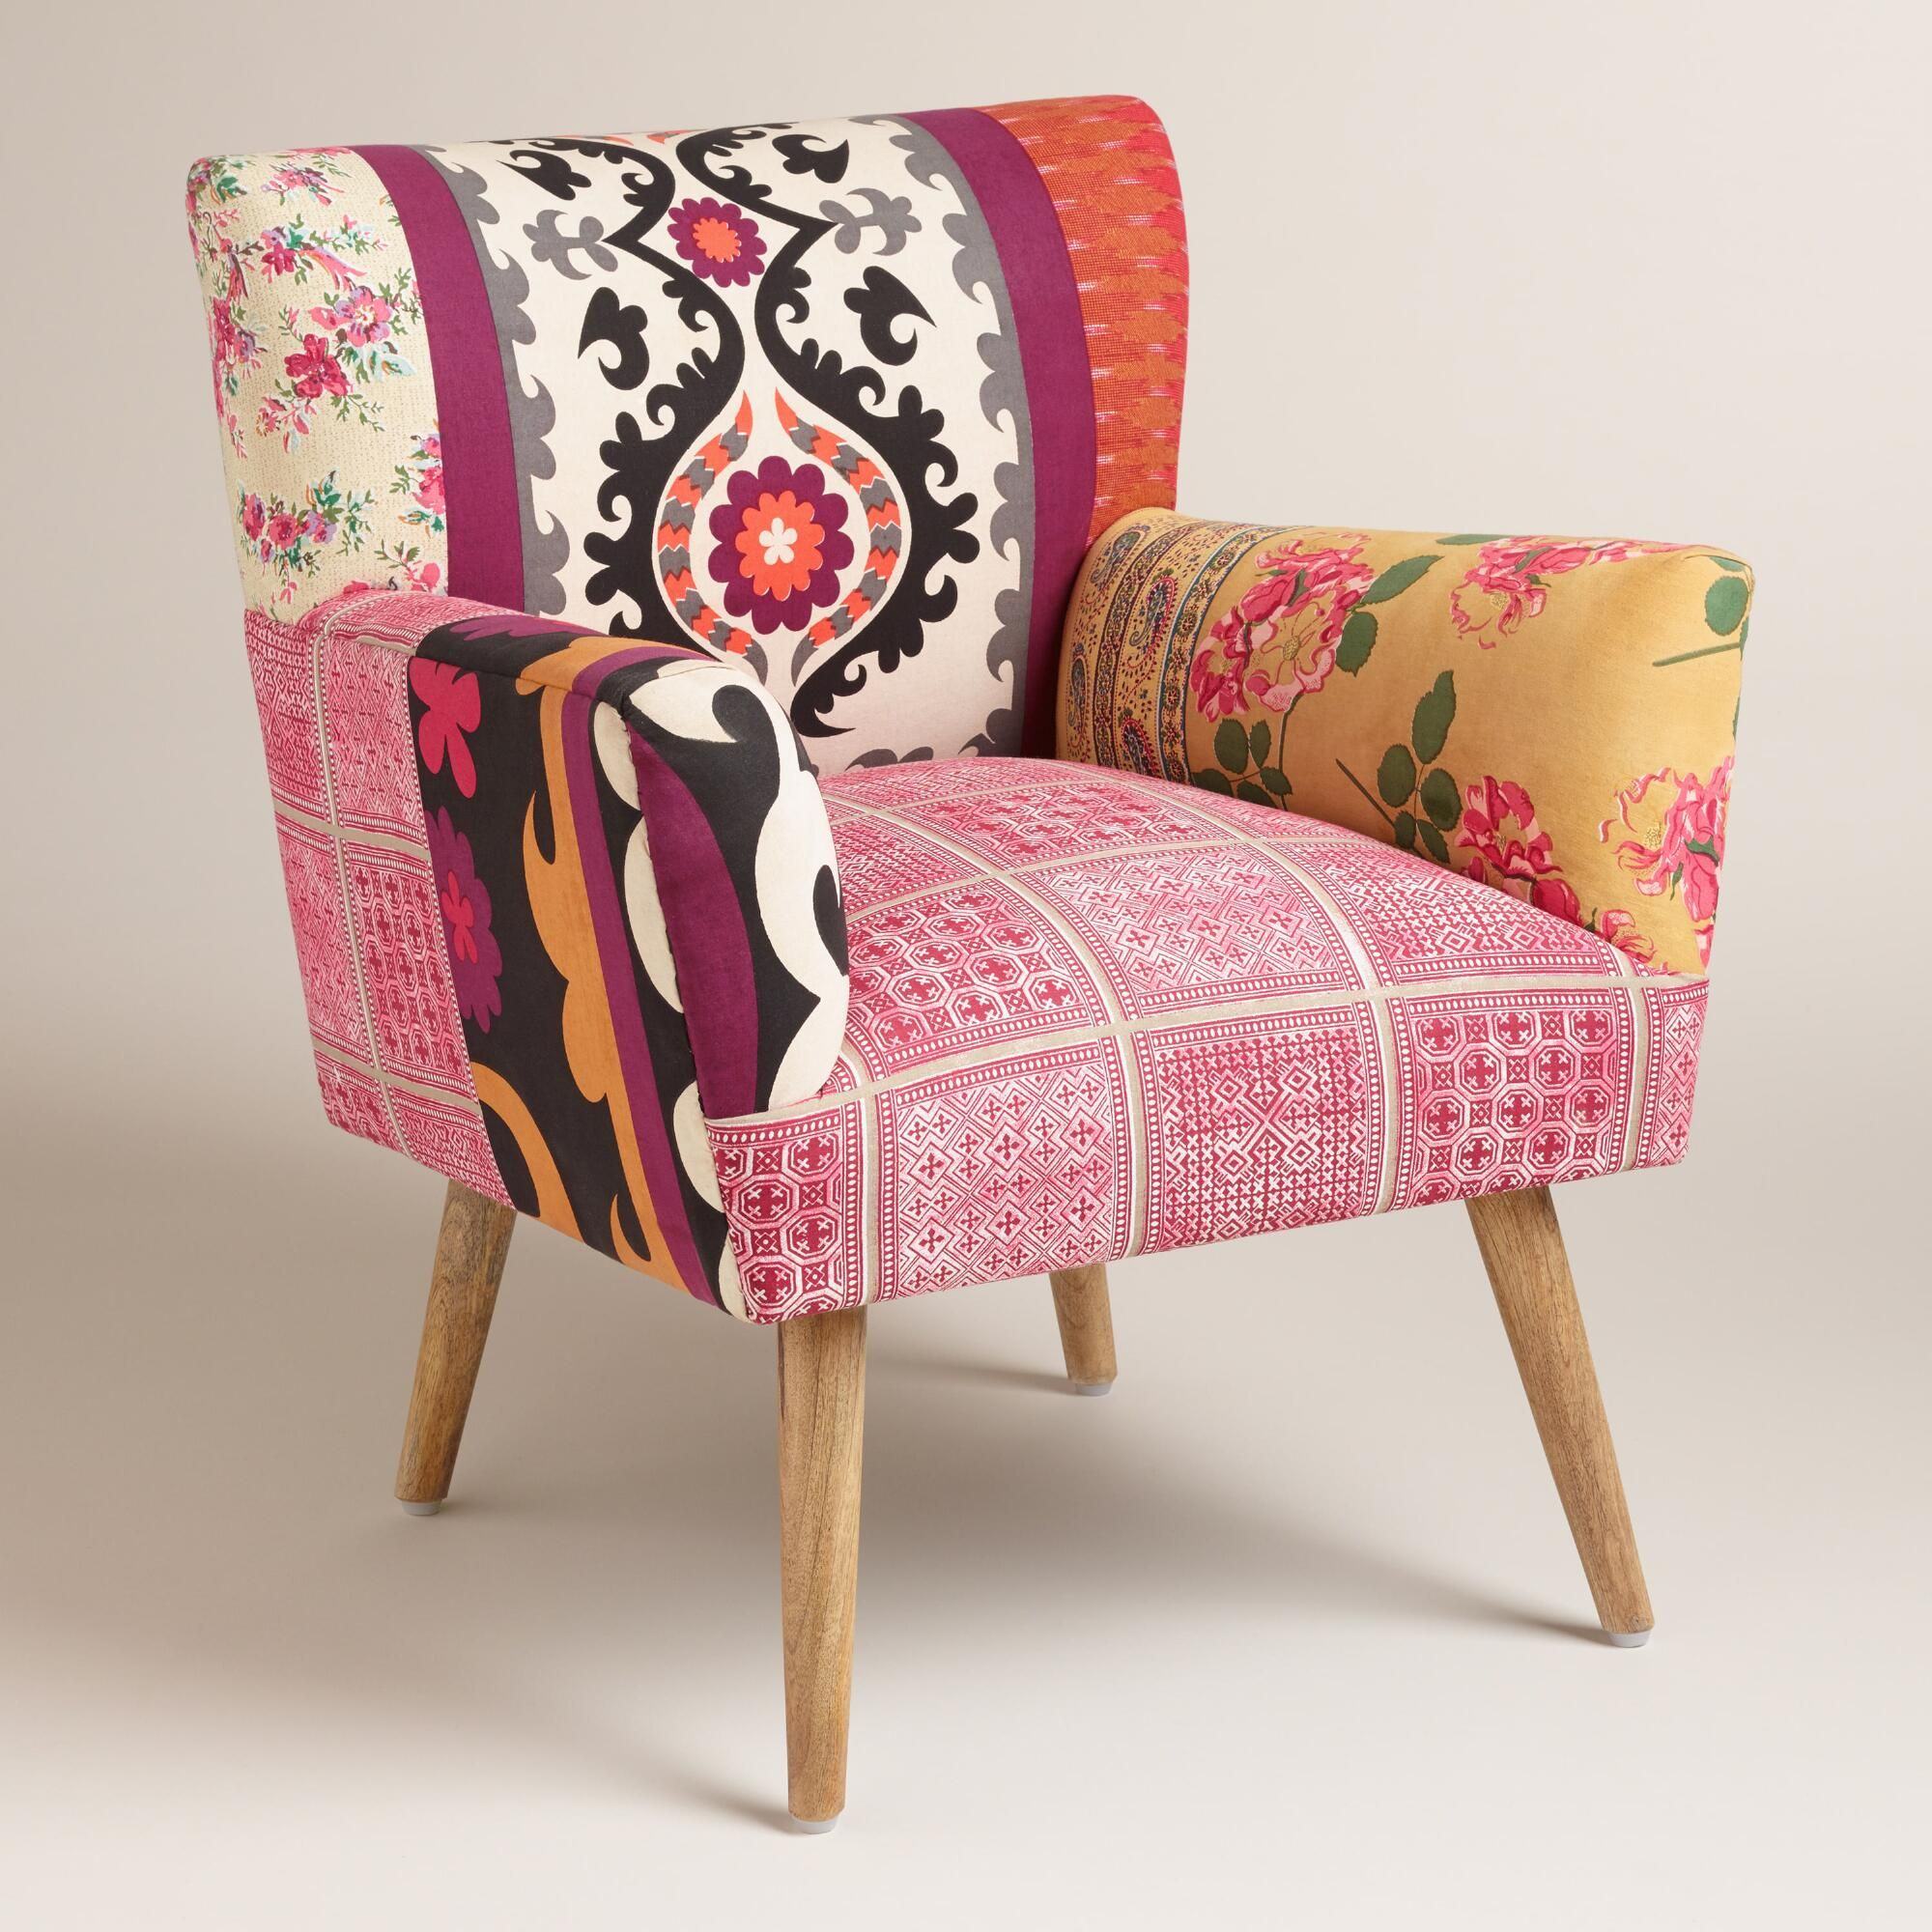 Colorful Accent Chair Gold Chiavari Chairs Rental An Eclectic Mix Of Prints And Colors Gives Our A Bohemian Feel Its Petite Vintage Inspired Profile Slightly Splayed Mango Wood Legs Add